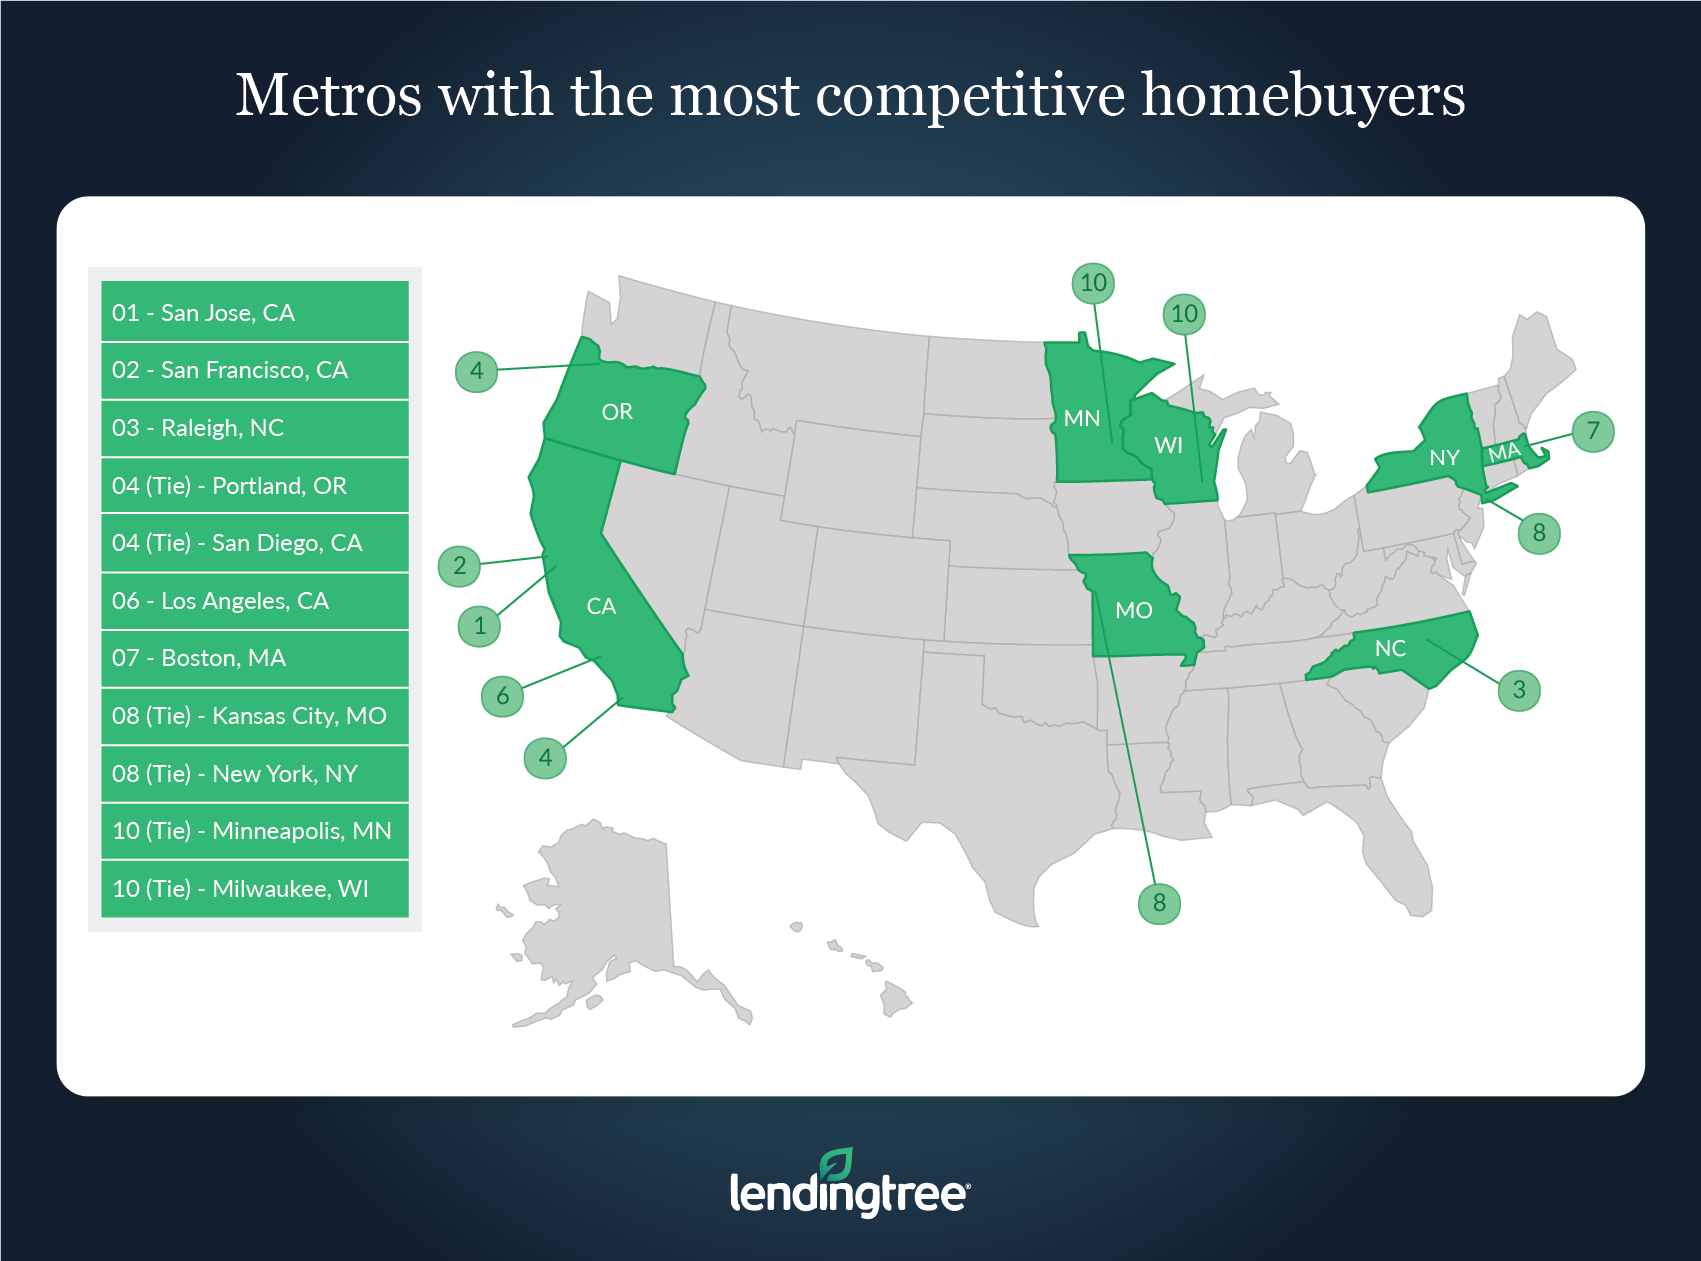 Metros With the Most Competitve Home Buyers